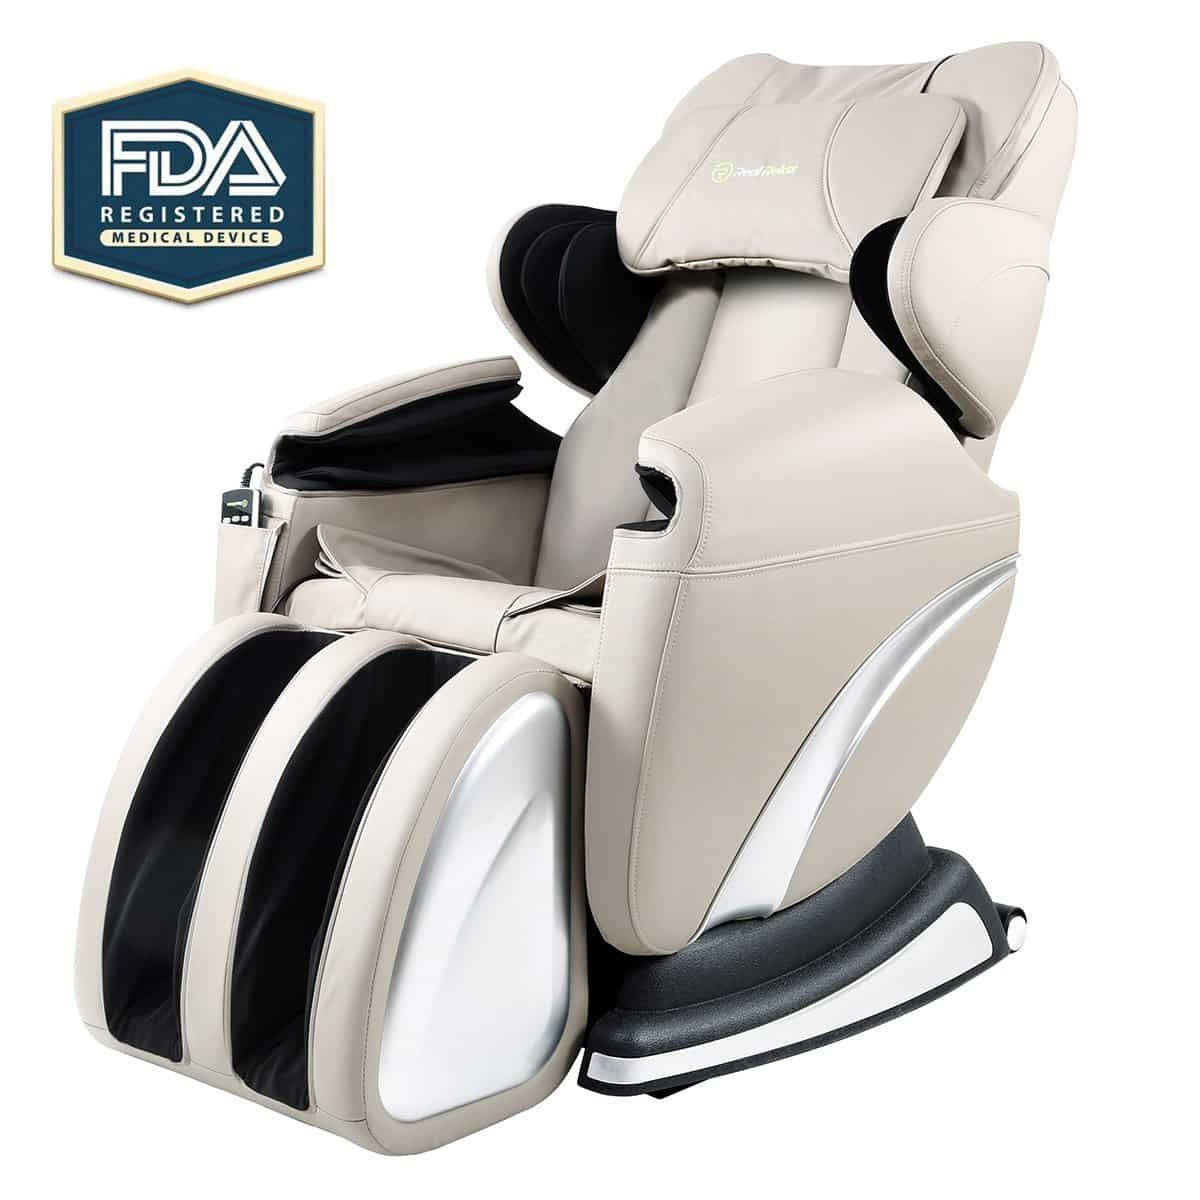 Pin On Top 10 Best Massage Chairs For Back Pain